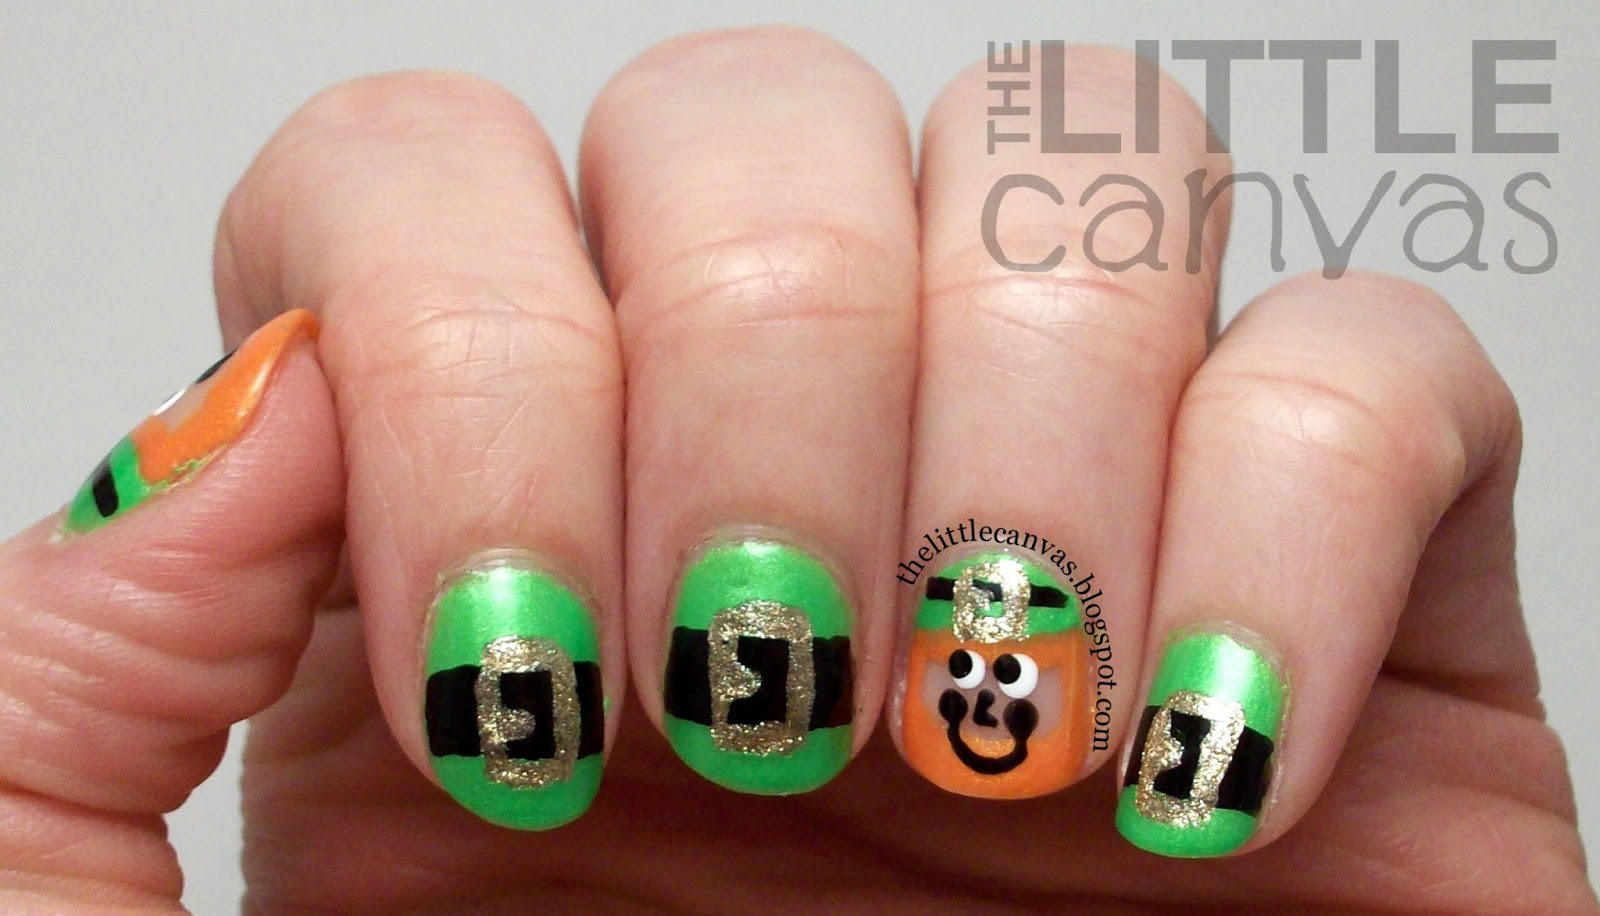 Happy St. Patrick\'s Day! (a day early) - The Little Canvas